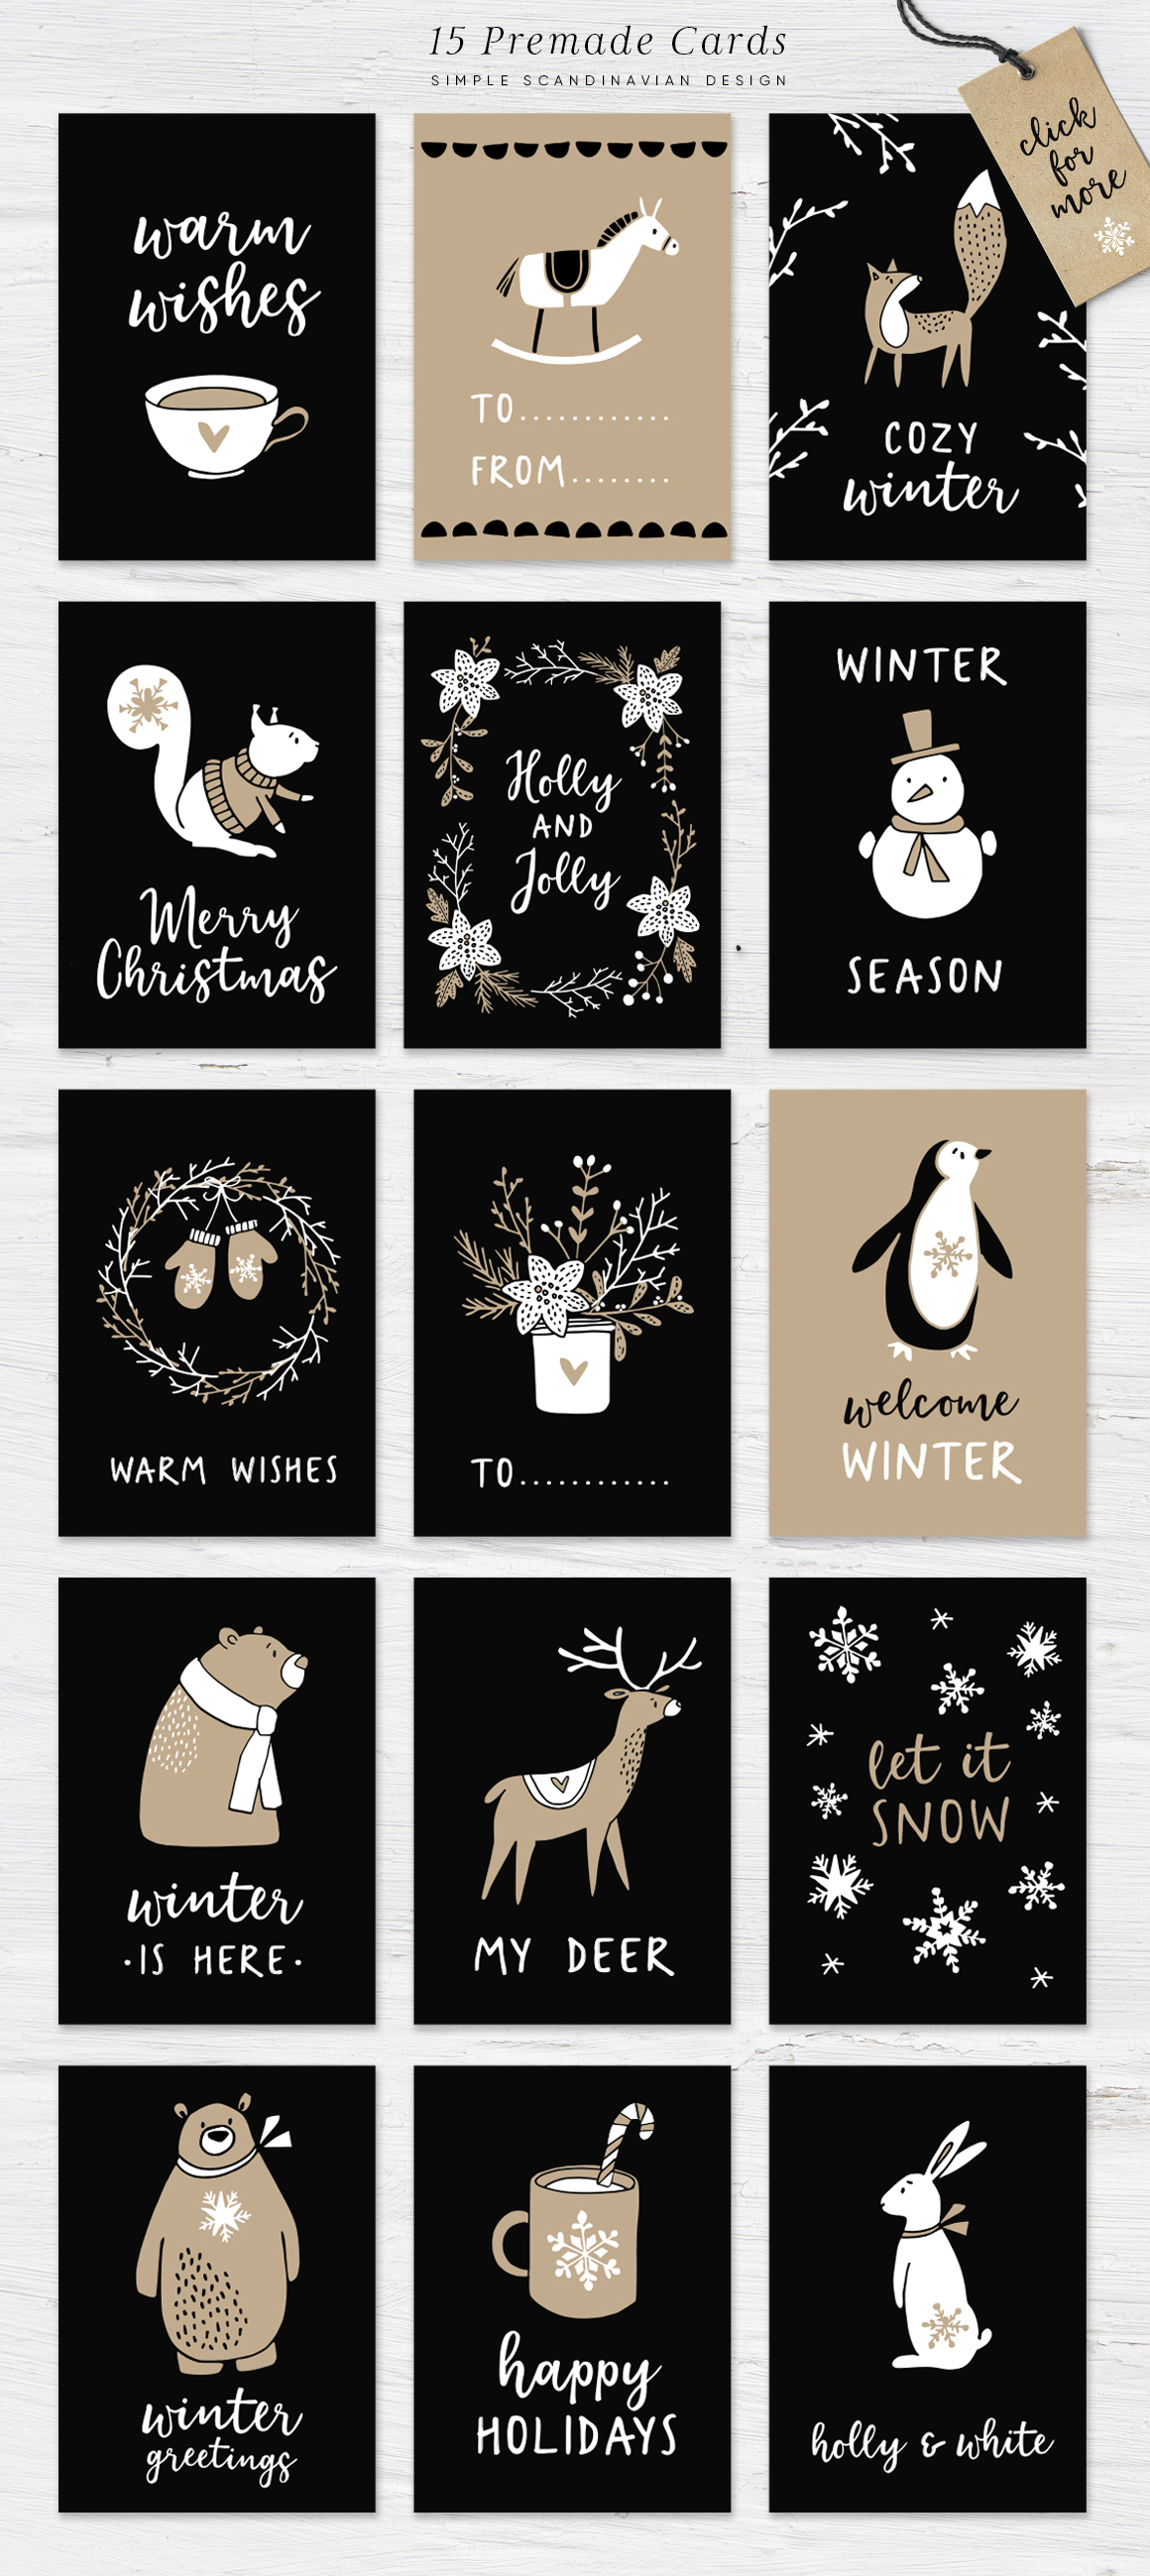 Welcome Christmas Scandinavian illustrations, cards, patterns example image 4